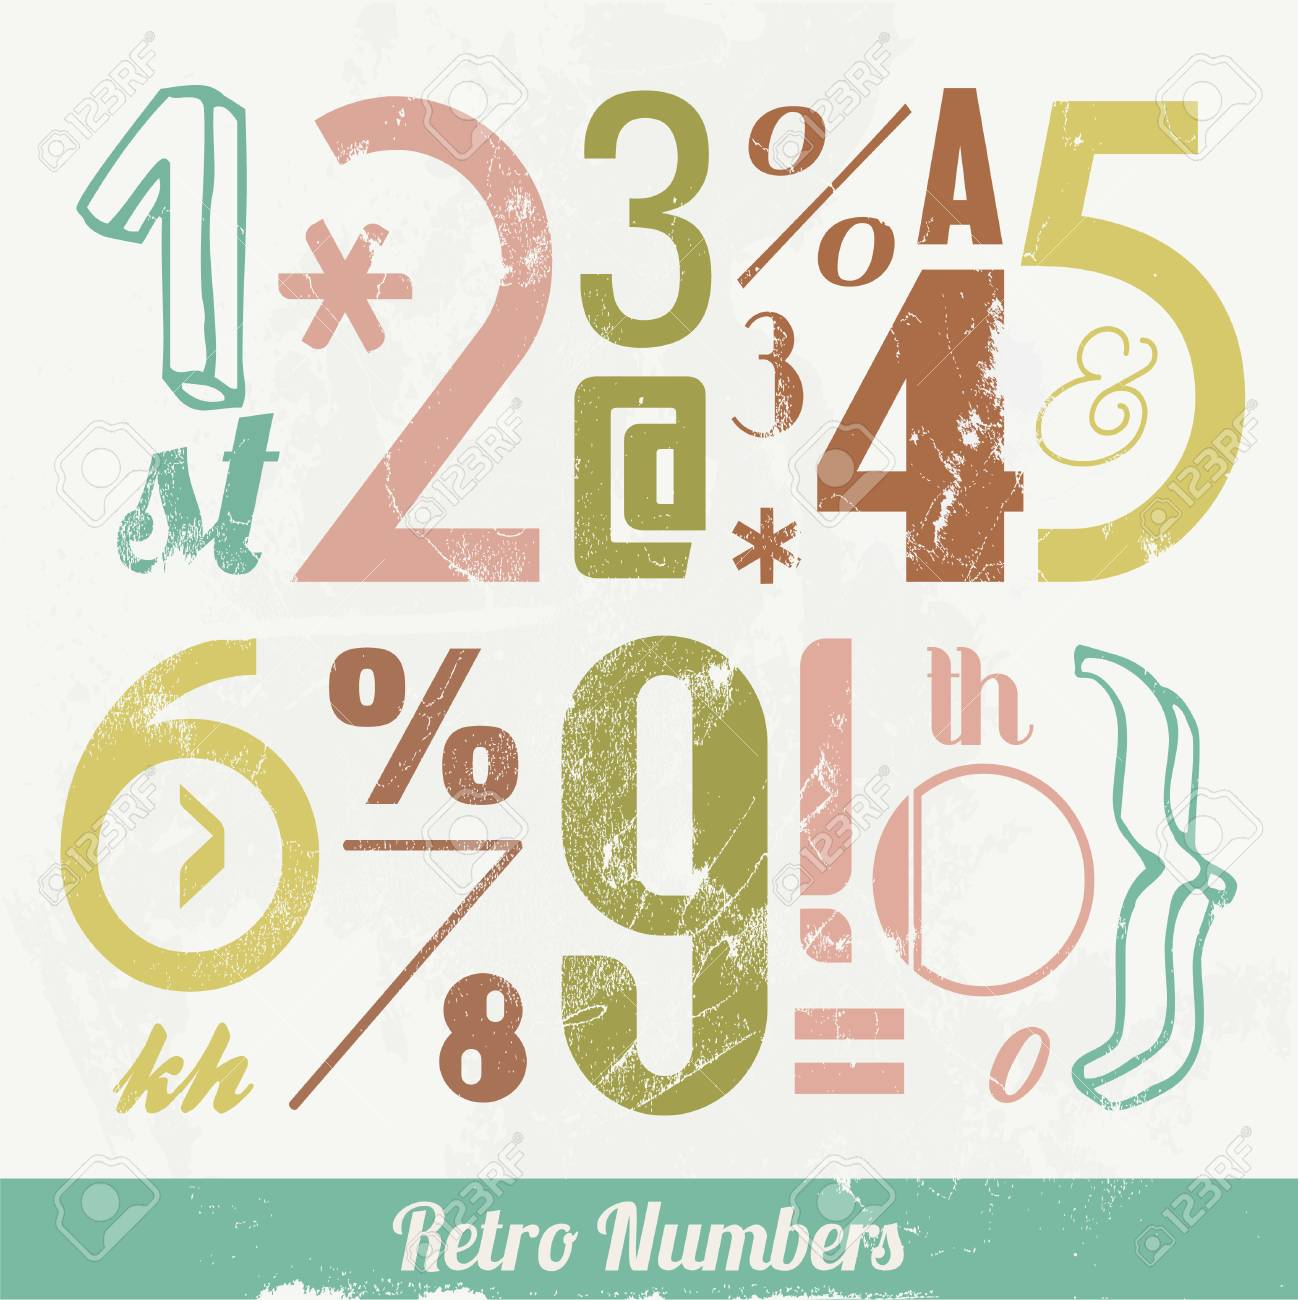 Various Vintage Number and Typography Collection  For High Quality Graphic Projects Stock Vector - 23763946